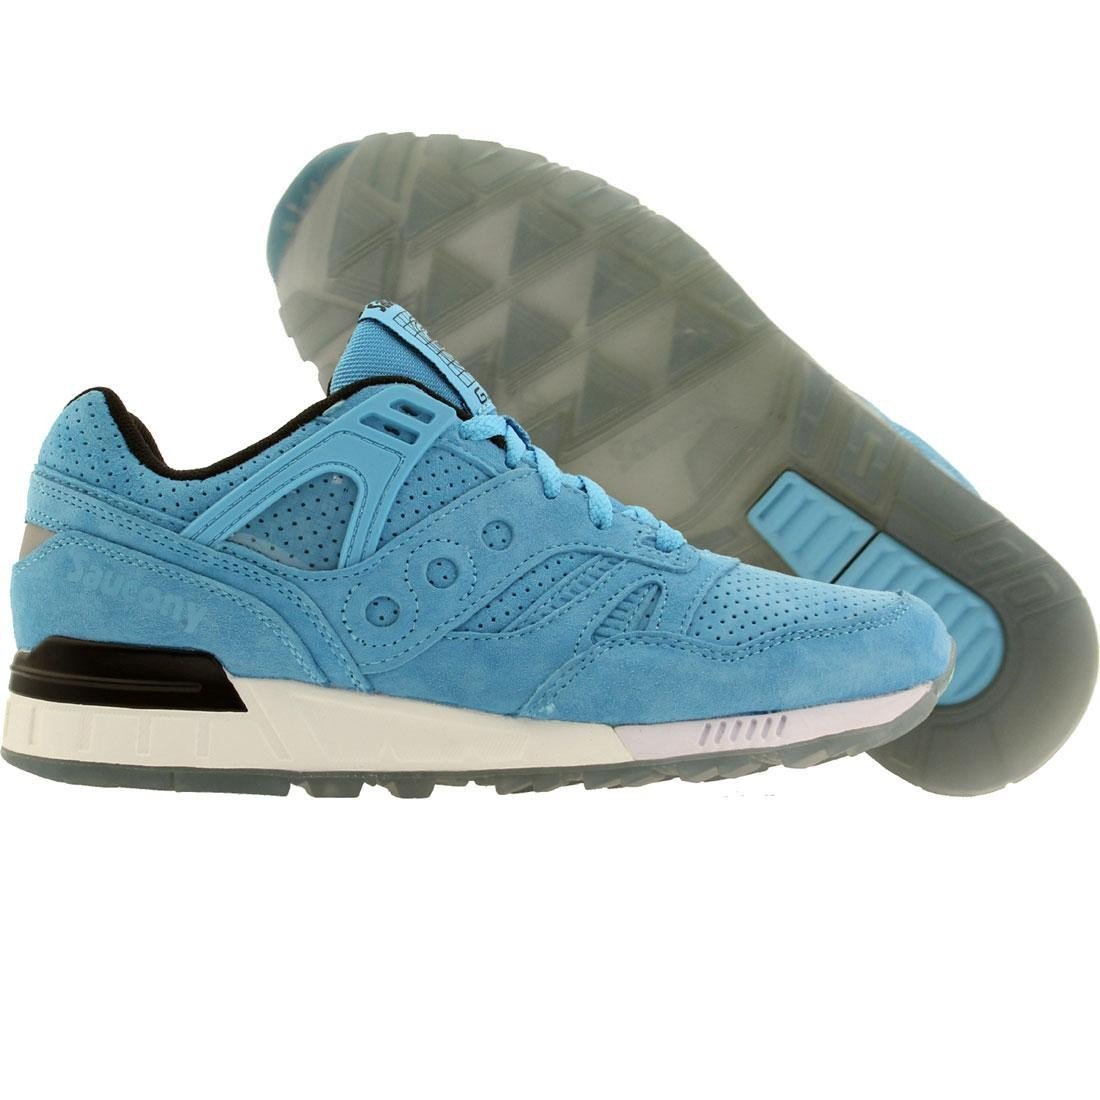 【海外限定】サッカニー 靴 メンズ靴 【 SAUCONY MEN GRID SD NO CHILL PACK BLUE LIGHT 】